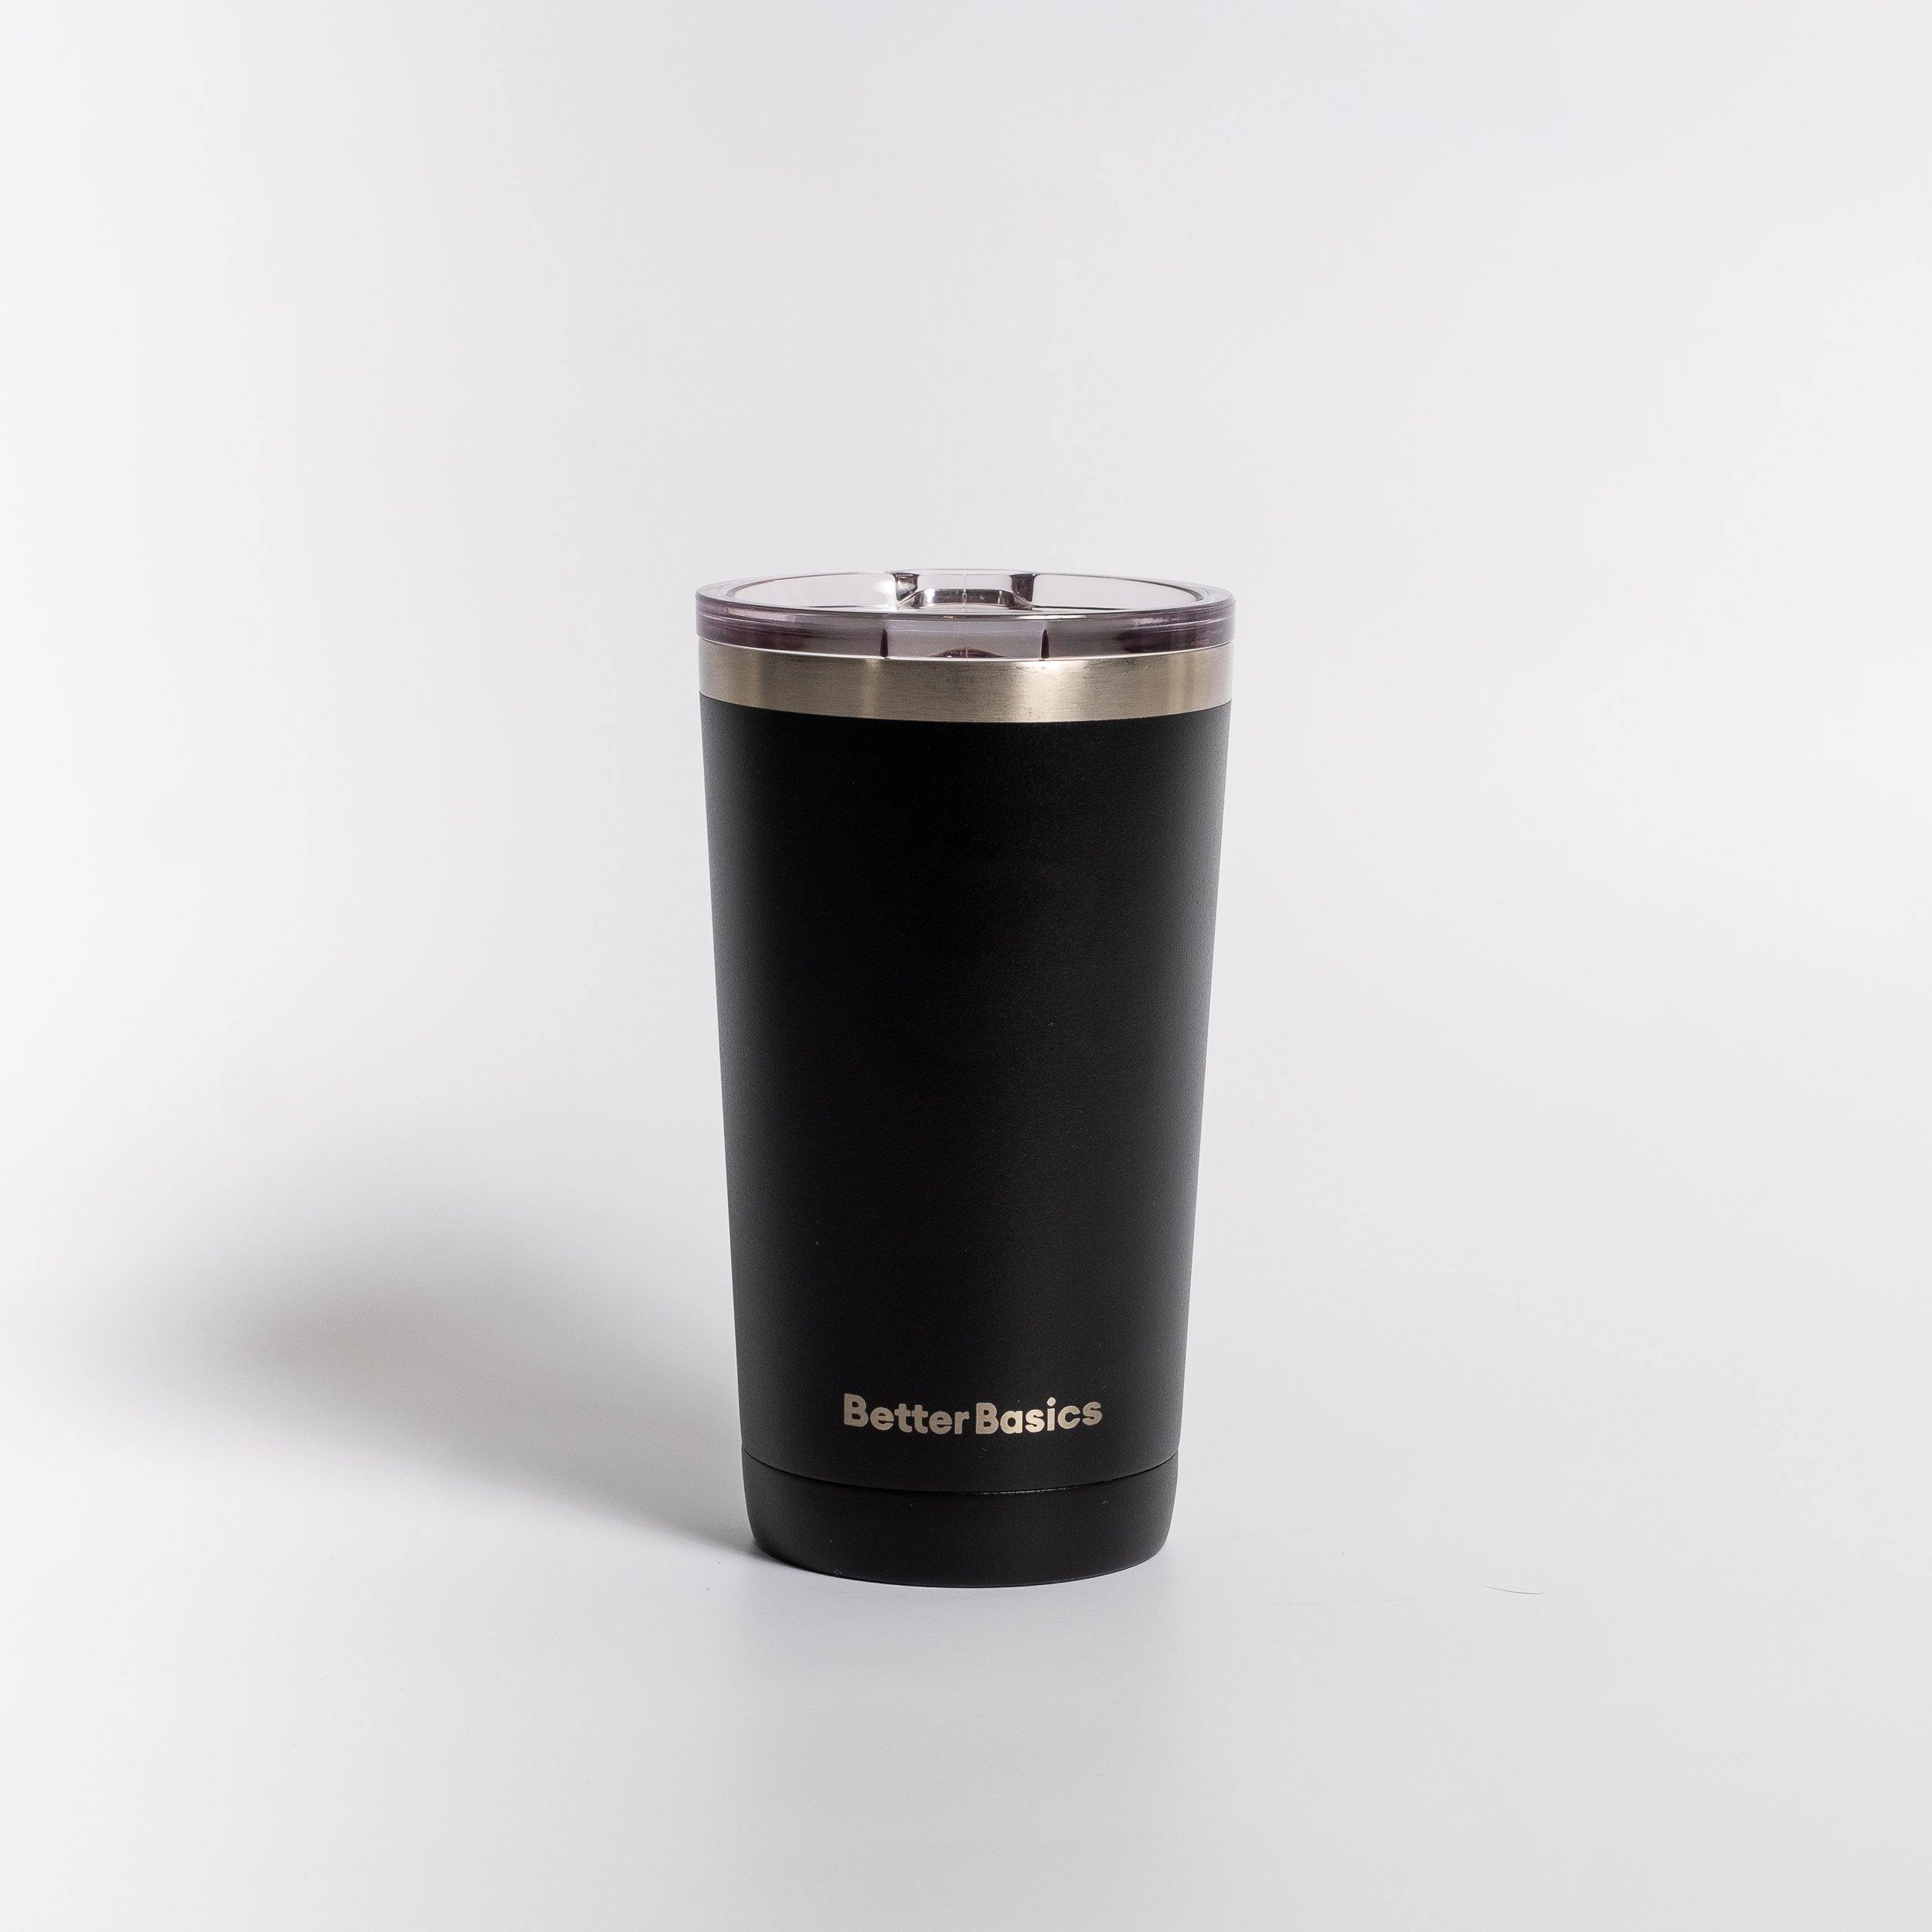 The Ever Mug - Container - Better Basics Eco-Friendly Products - Vancouver Canada